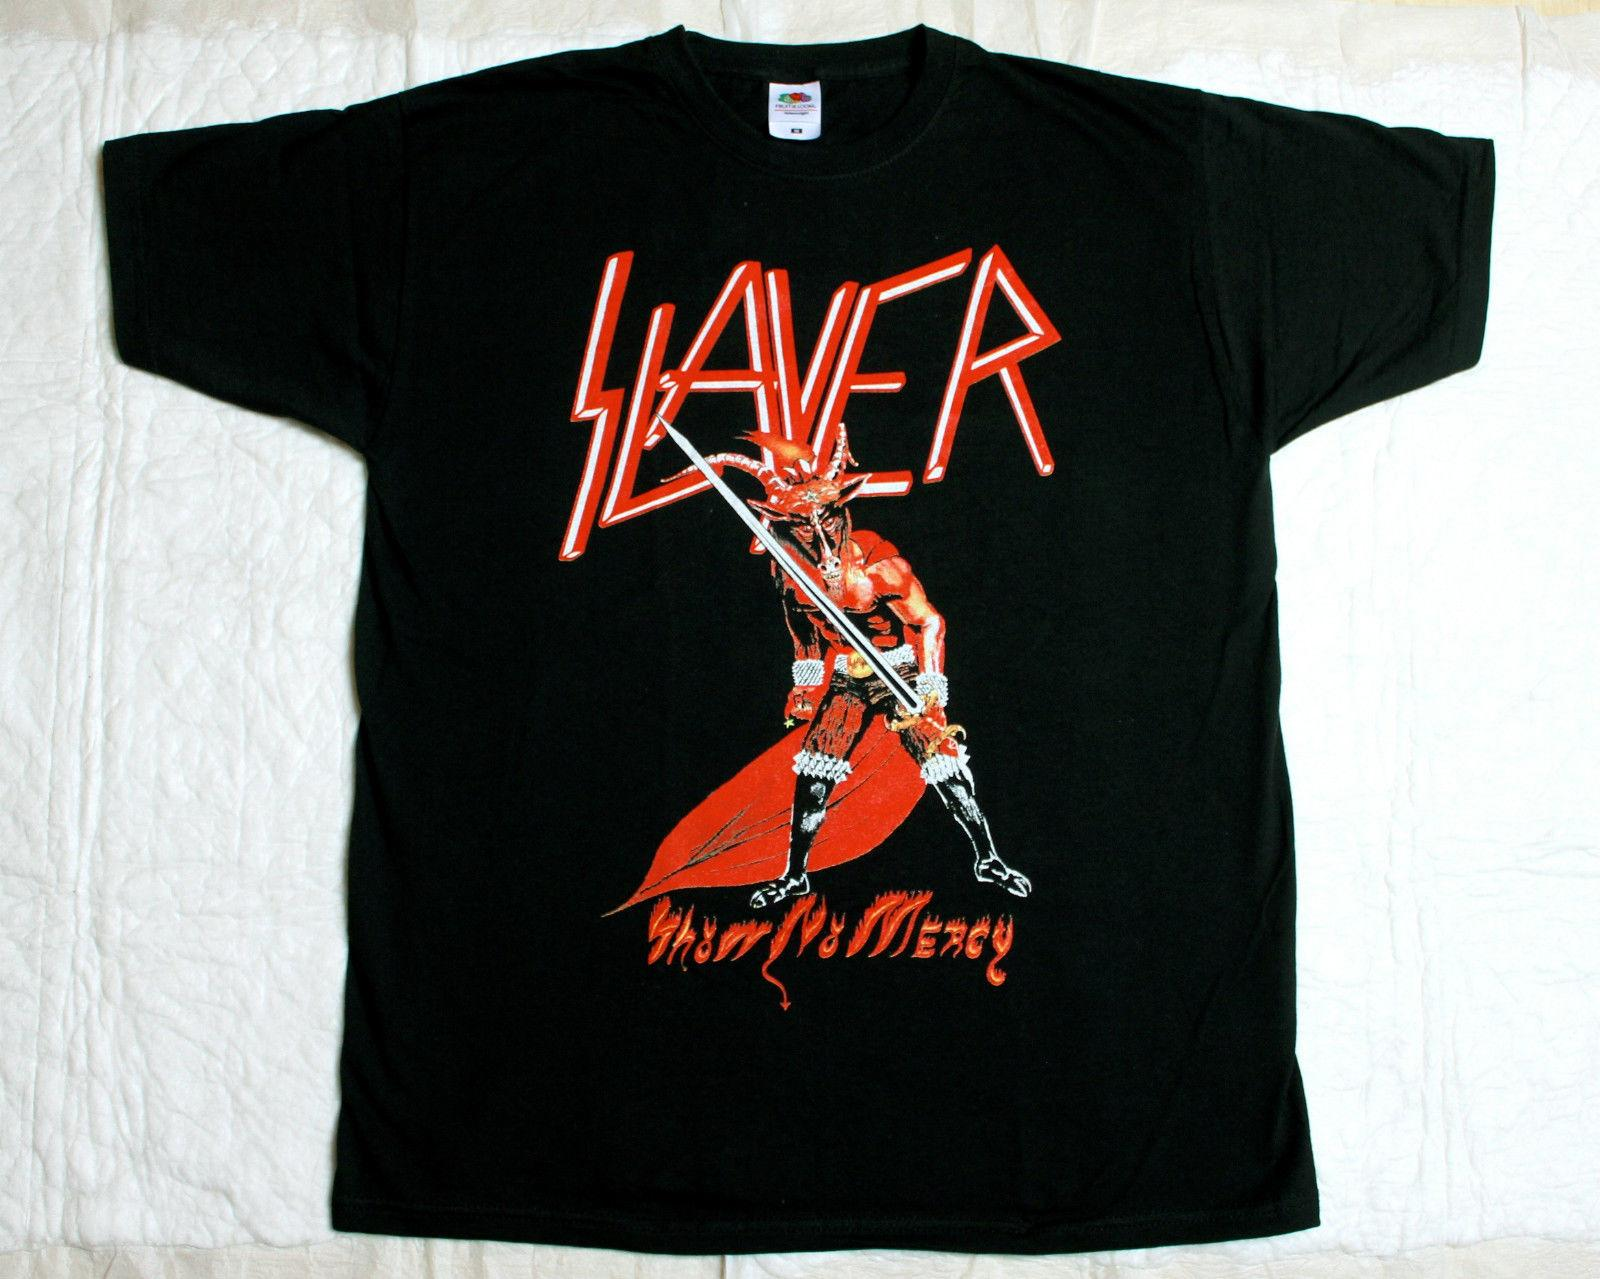 Slayer Show No Mercy'83 New Black T Shirt Tops Summer Cool Funny T-shirt Mens 100% Cotton Short Sleeve Print